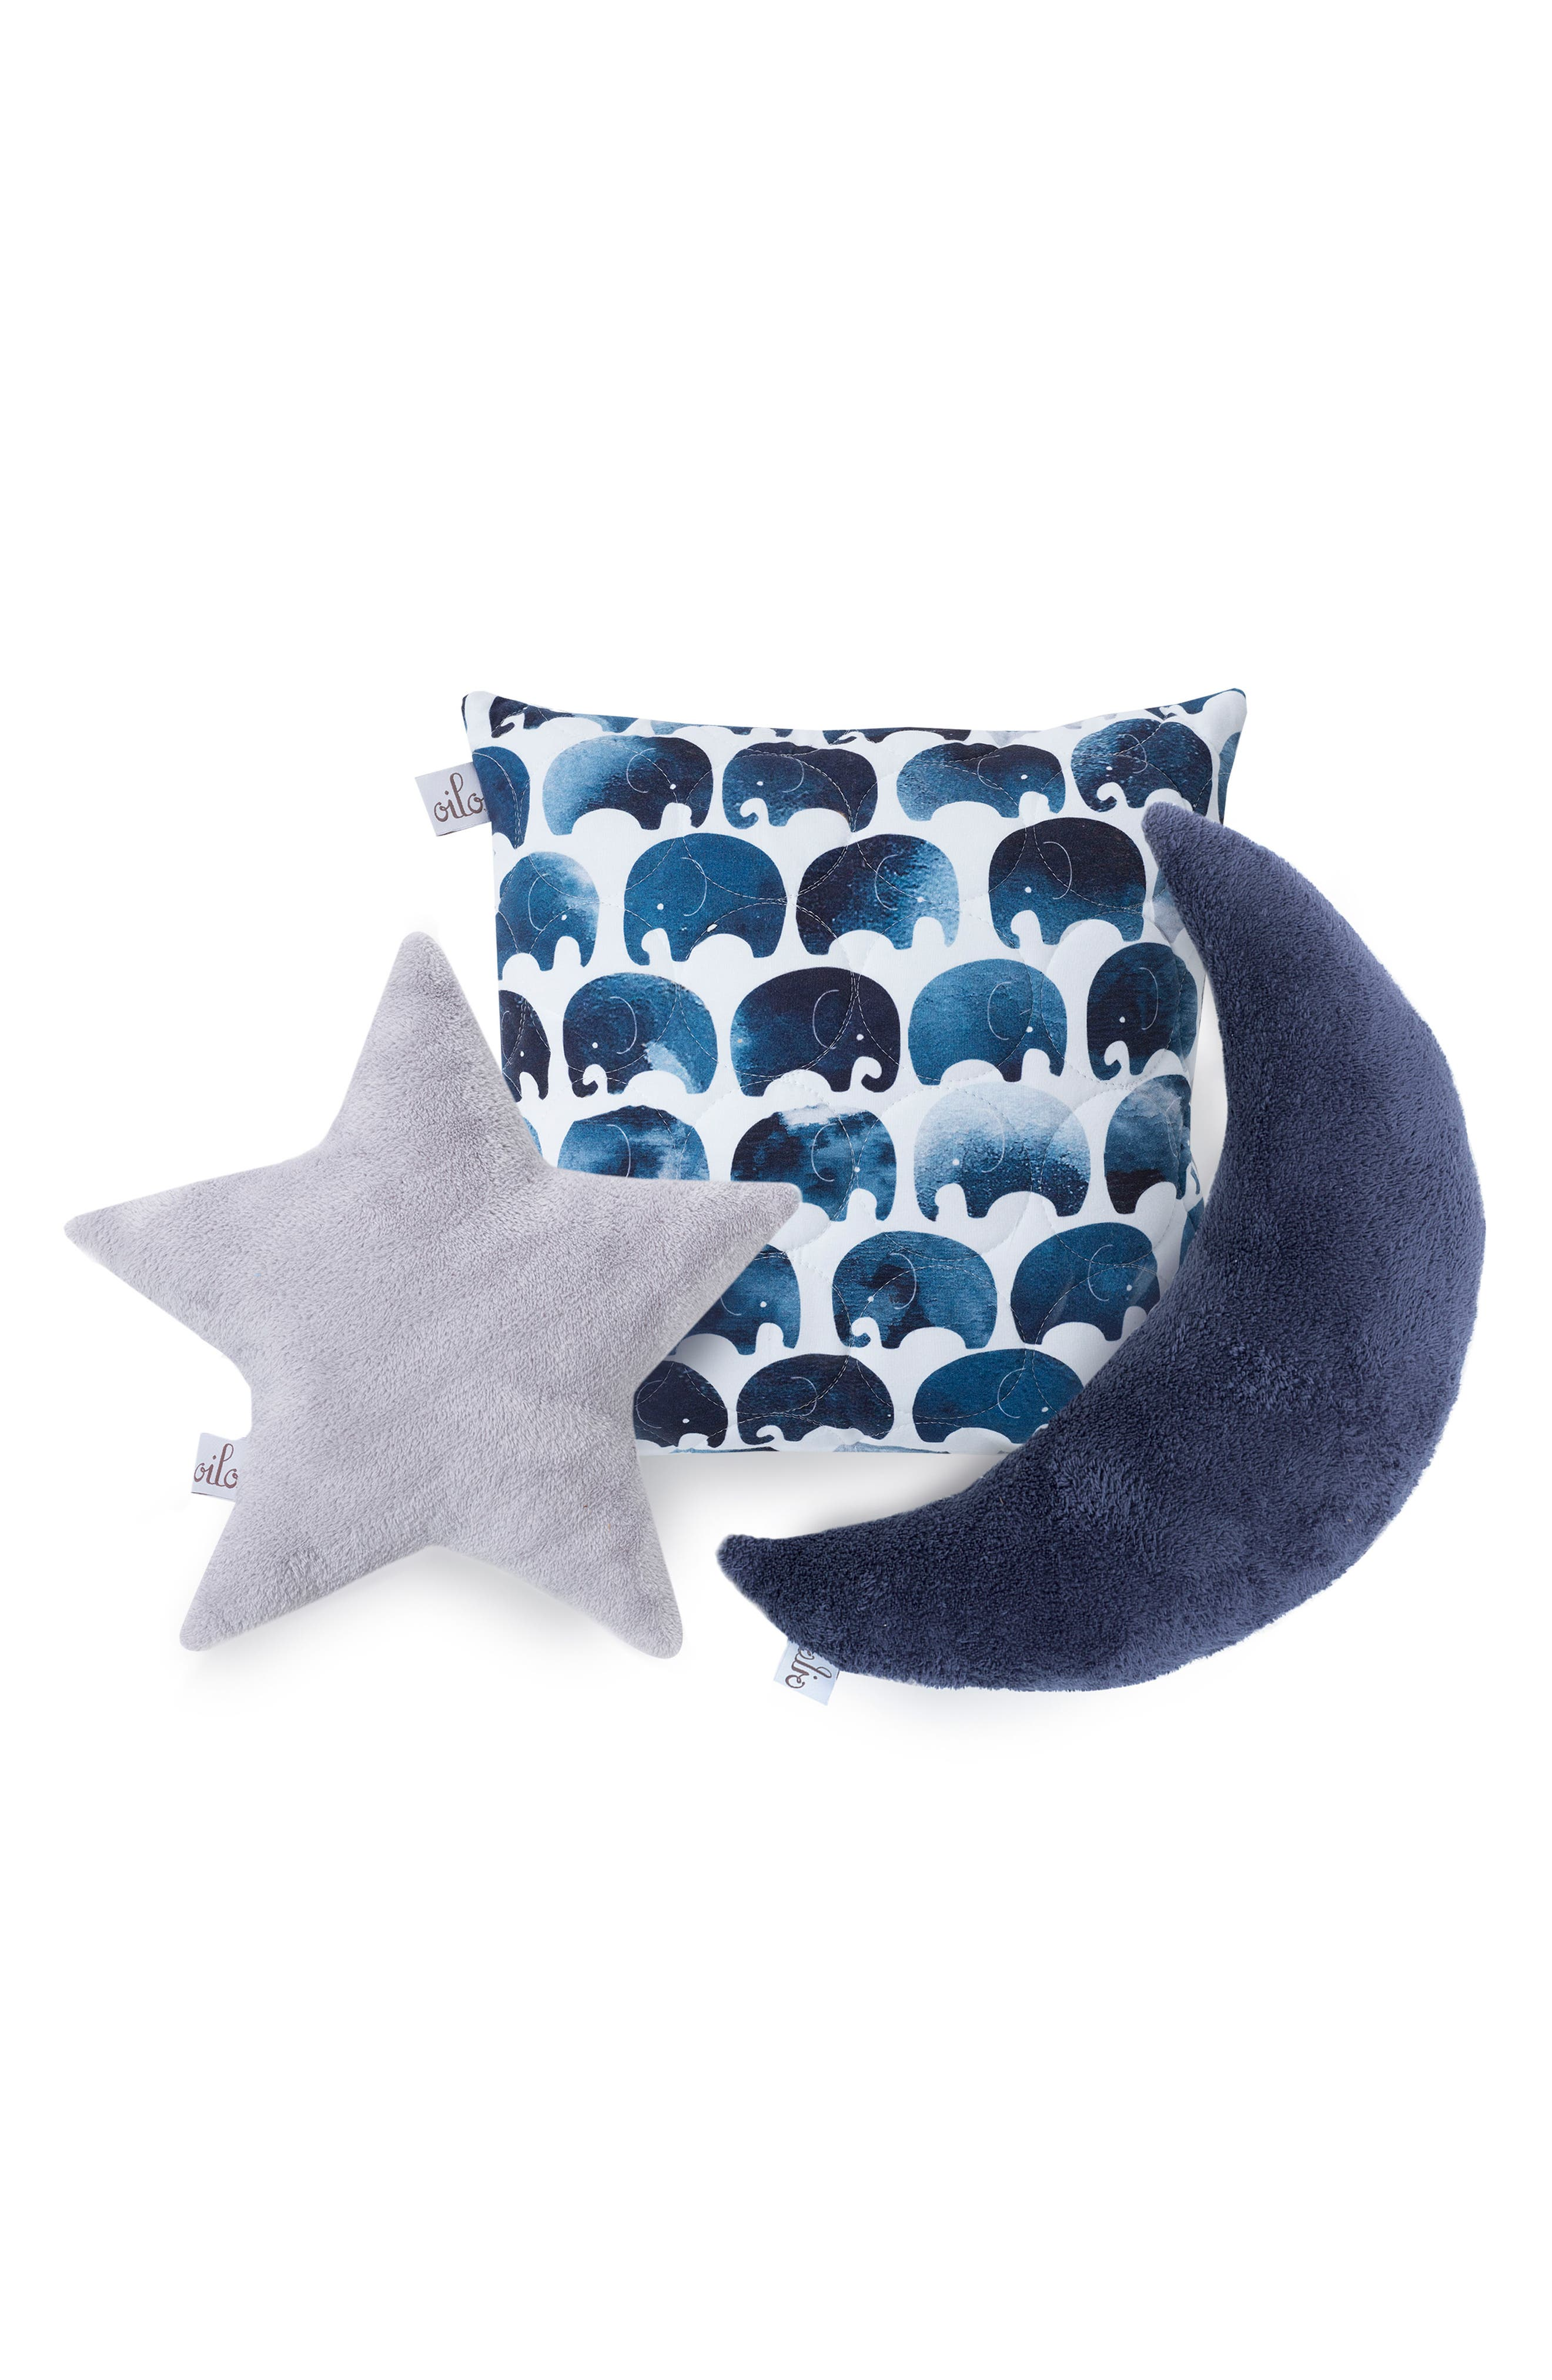 3-Piece Pillow Set,                             Alternate thumbnail 6, color,                             Elefant